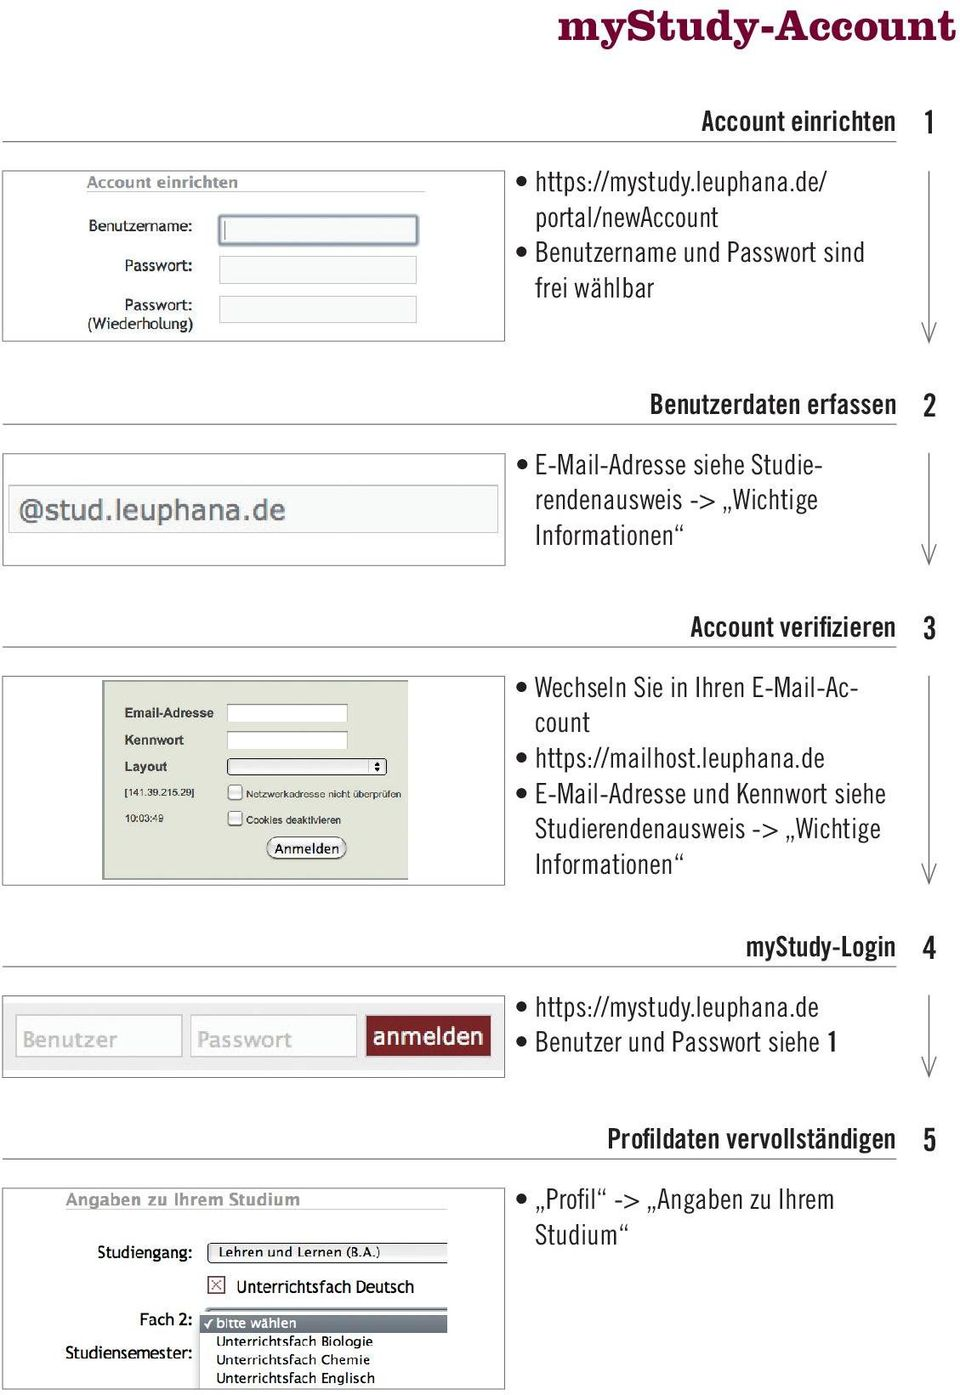 -> Wichtige Informationen Account verifizieren 3 Wechseln Sie in Ihren E-Mail-Account https://mailhost.leuphana.